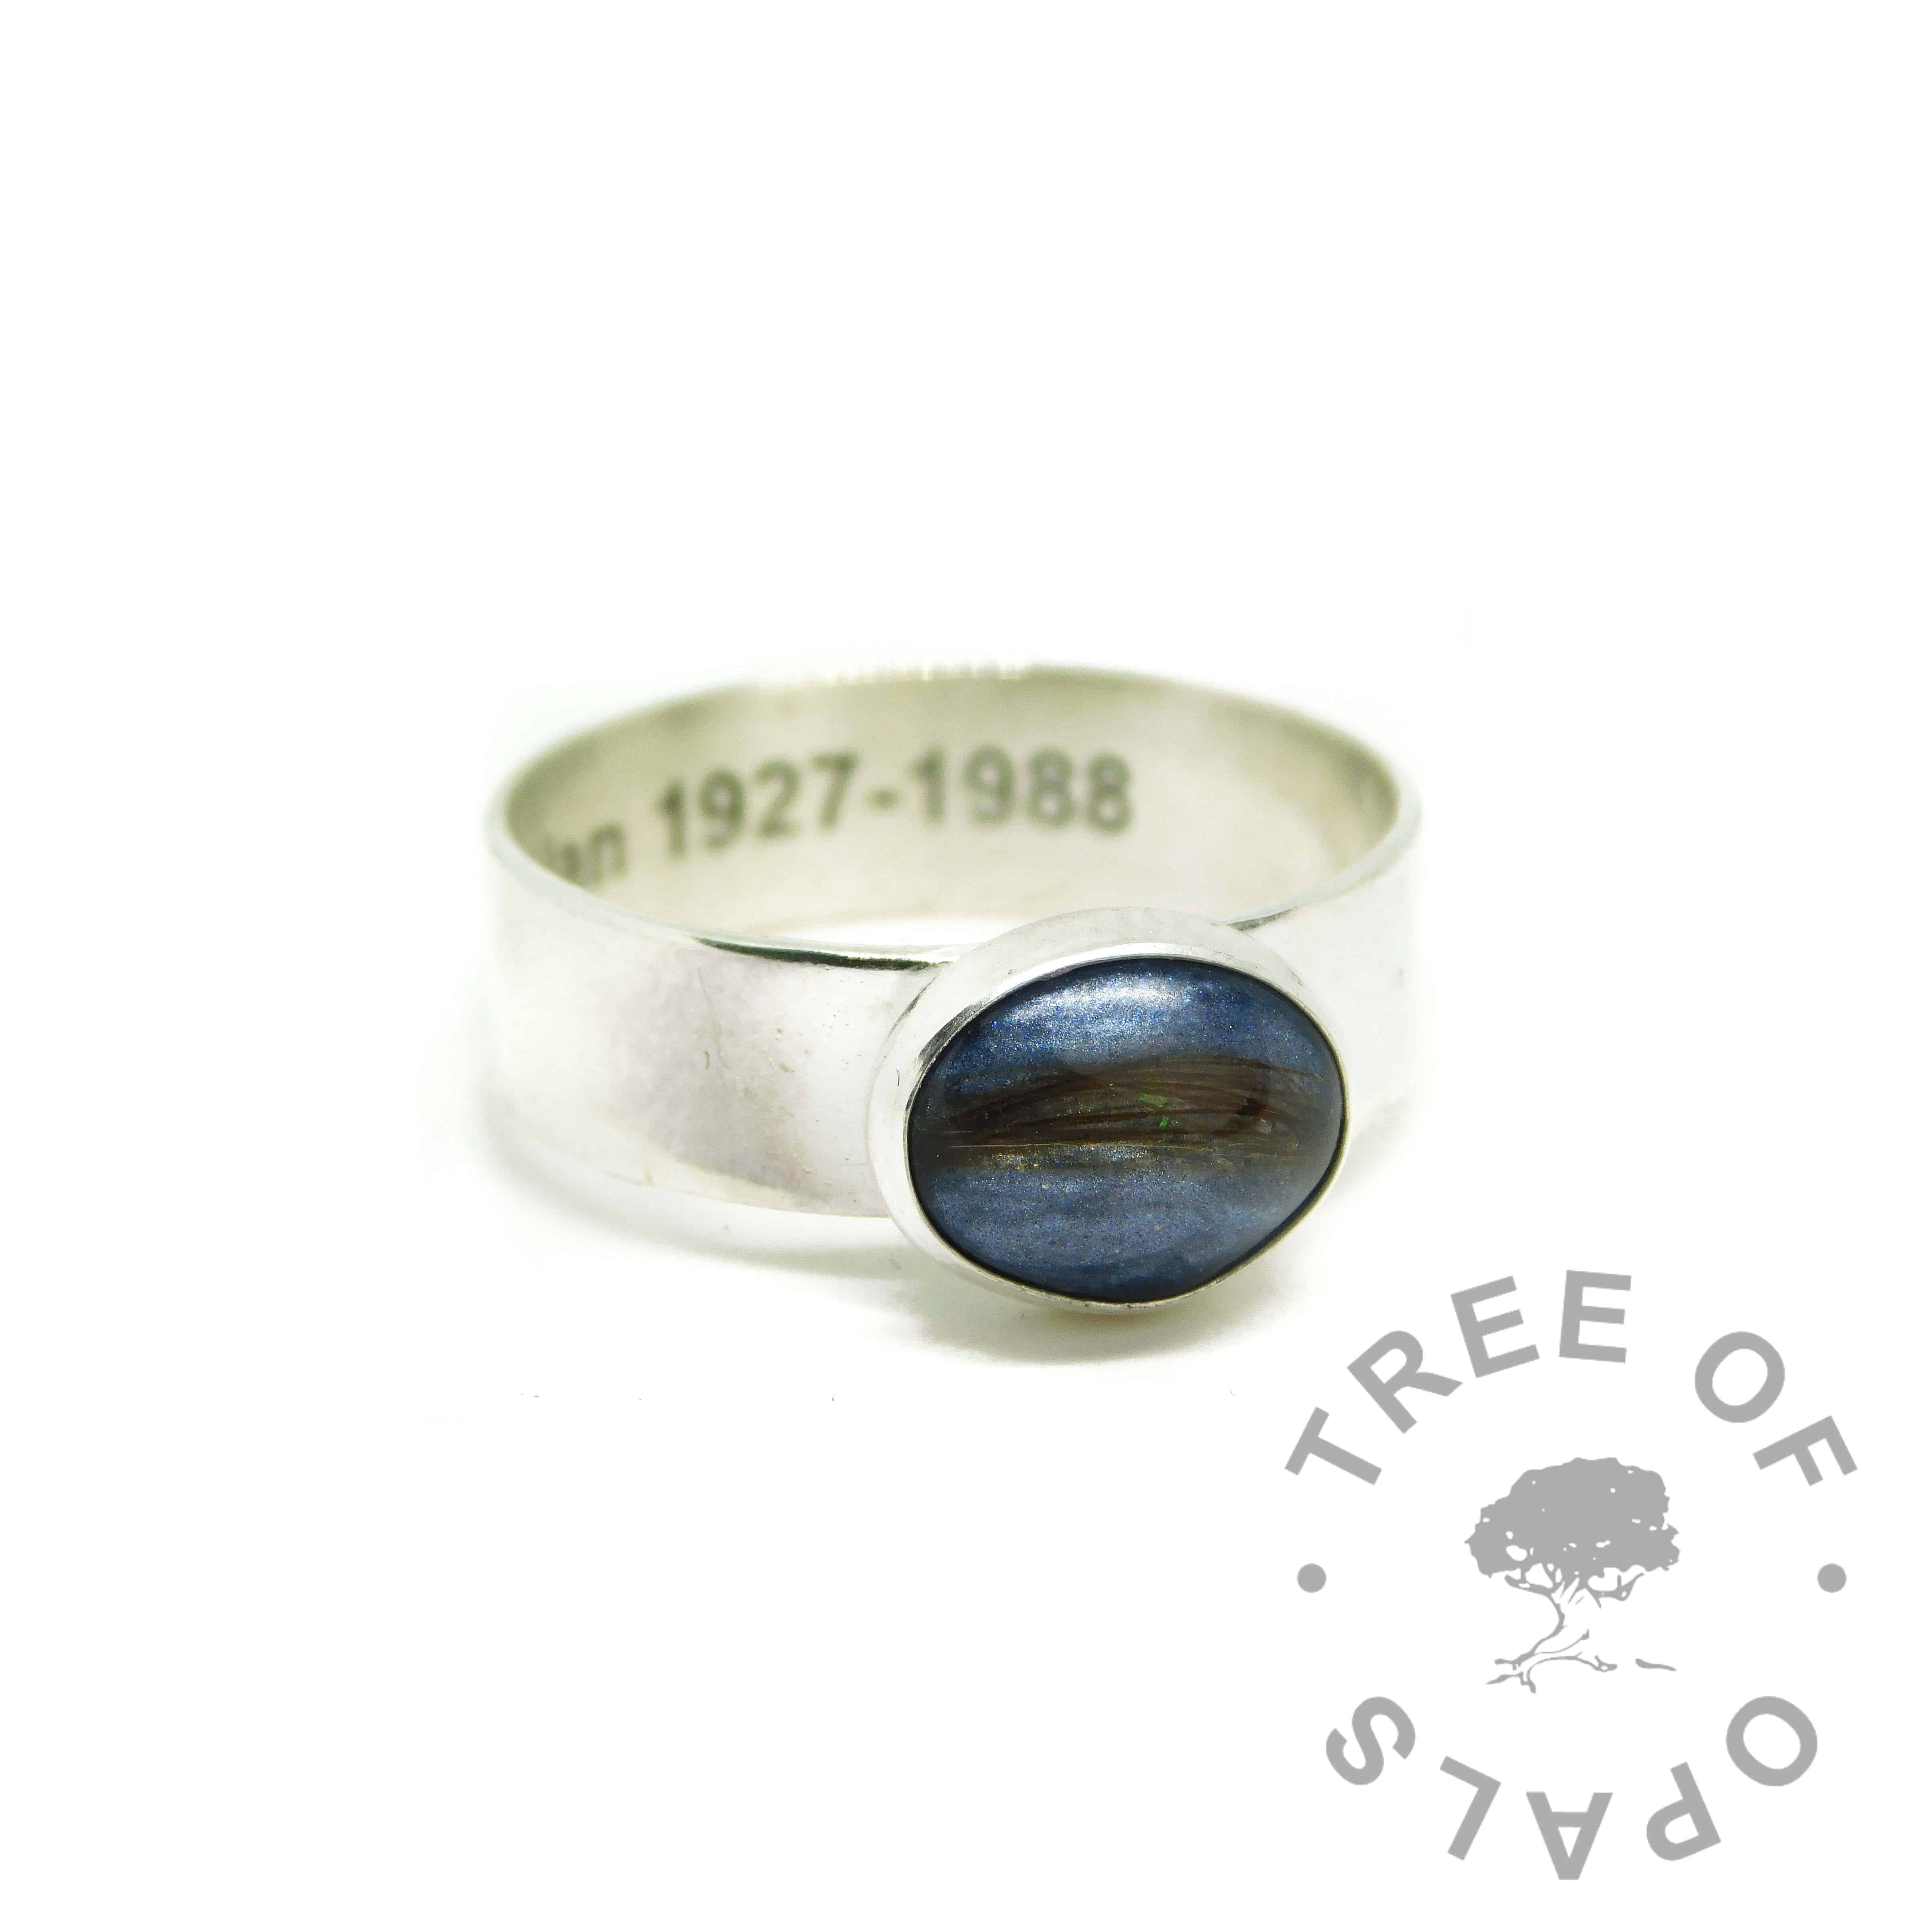 blue hair ring, lock of hair ring on 6mm shiny band with Arial font engraving on the inside. Aegean blue resin sparkle mix